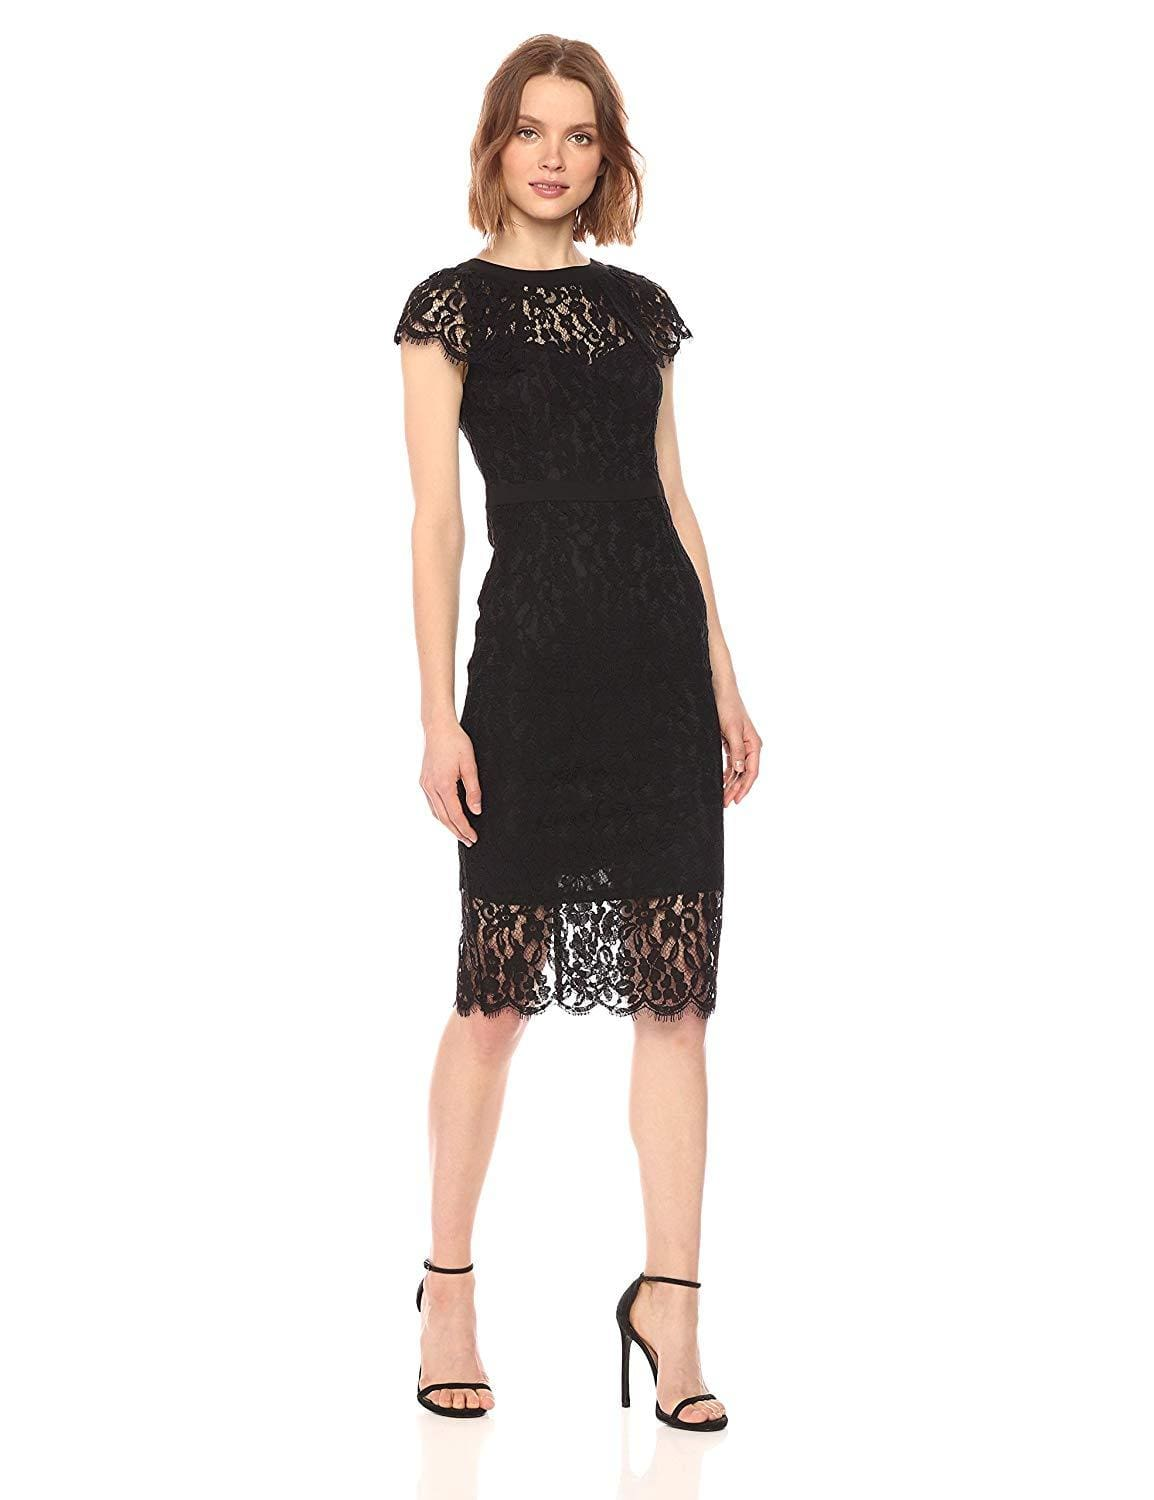 Bebe - 70378A Knee Length Cap Sleeve Sheer Lace Dress from Bebe